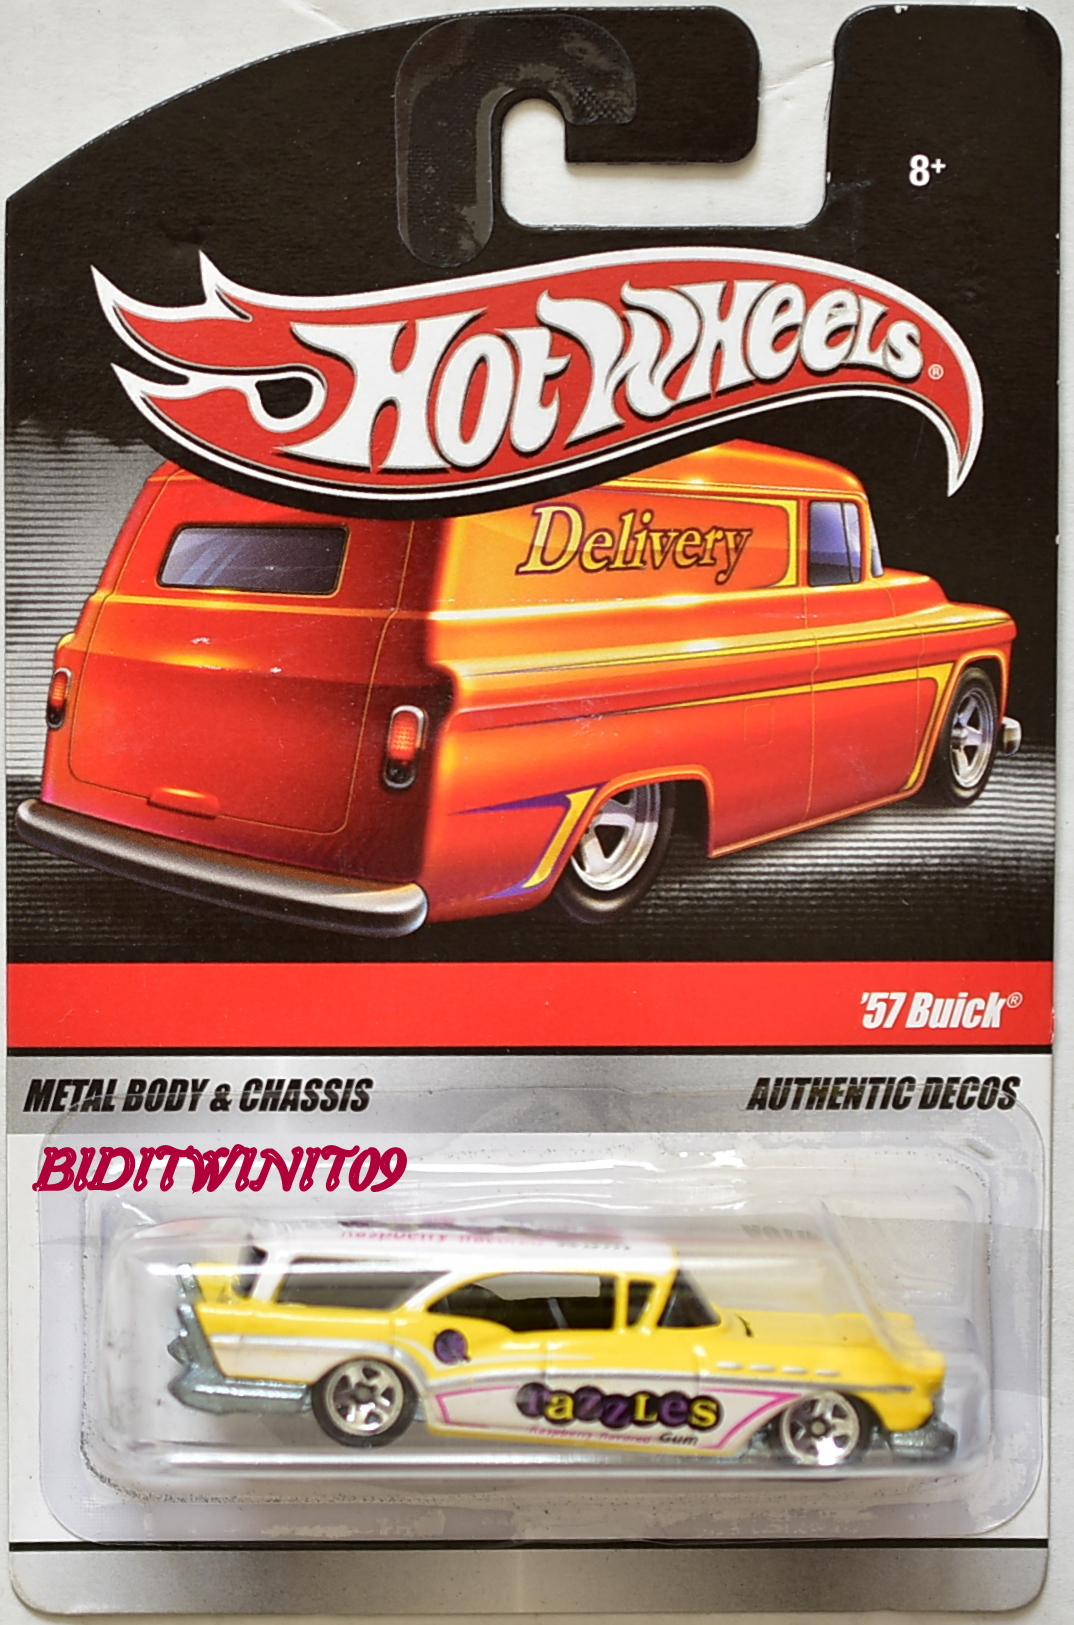 HOT WHEELS DELIVERY '57 BUICK YELLOW E+